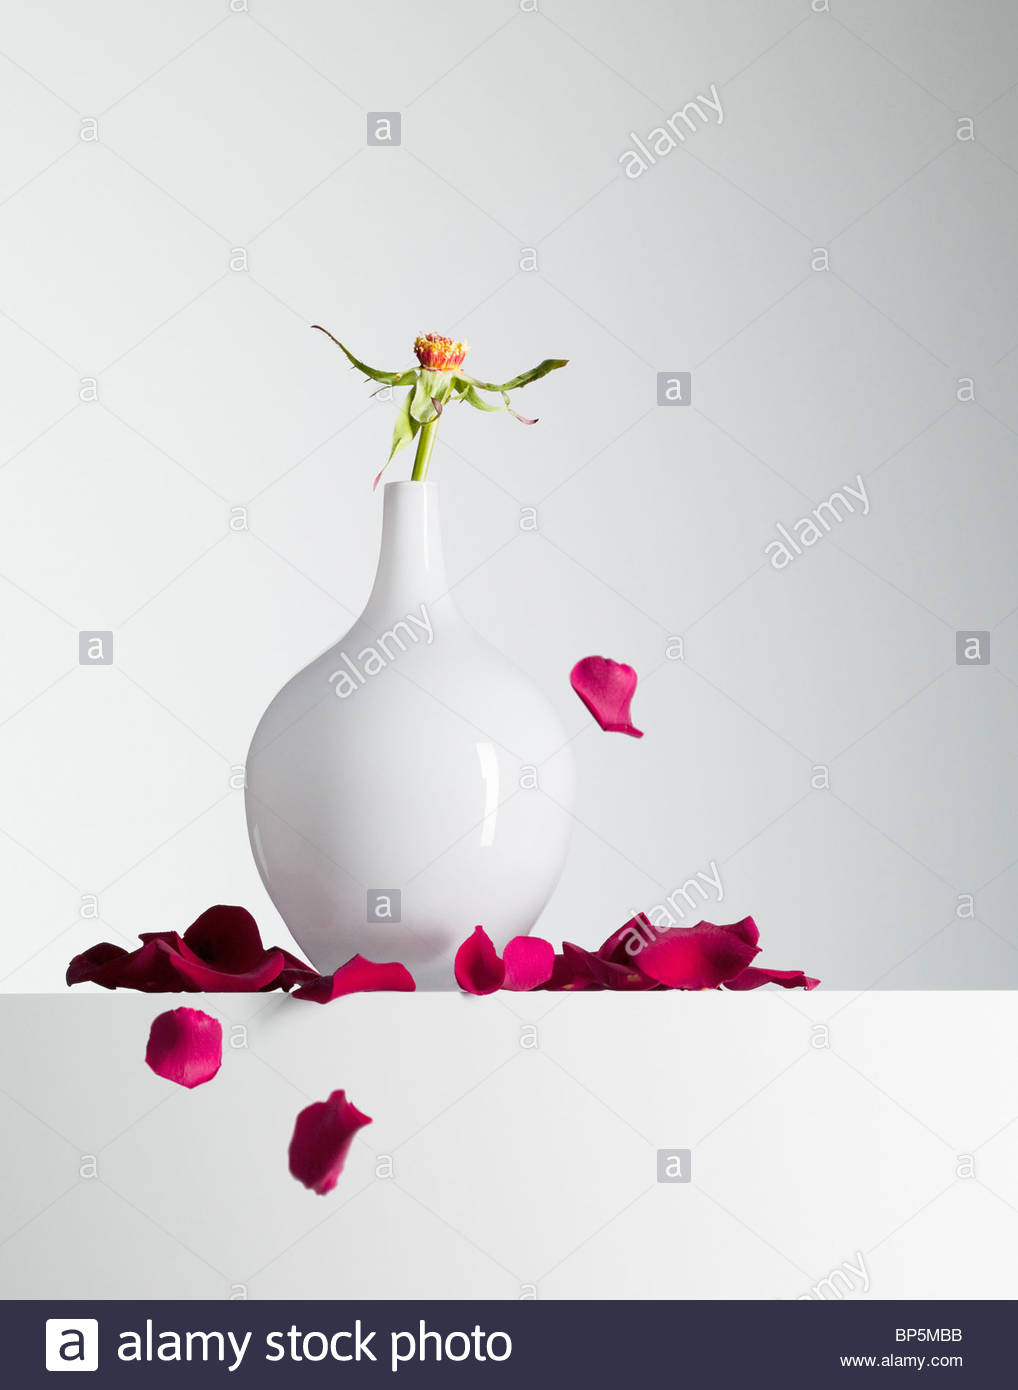 Red flower petals falling from stem in vase - Stock Image